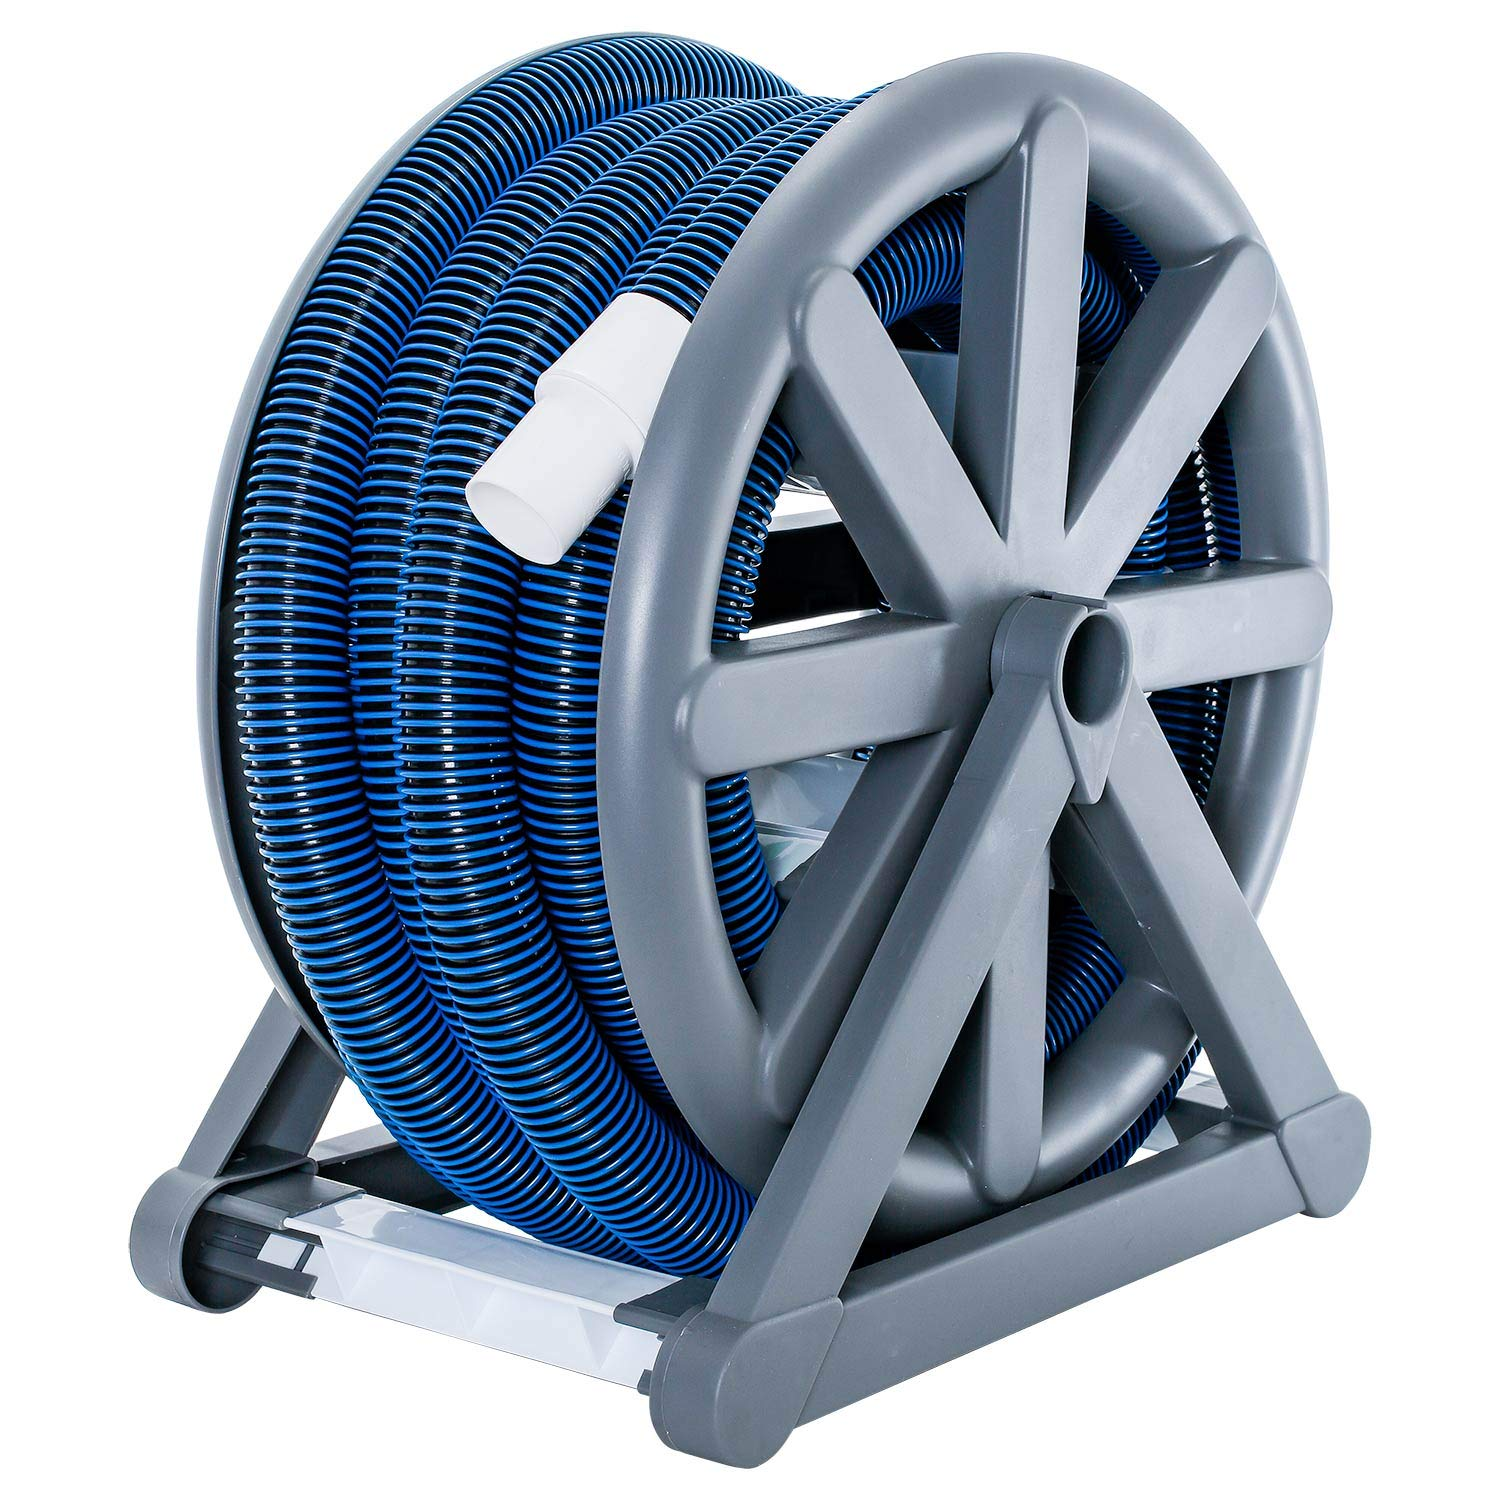 U.S. Pool Supply 1-1/2'' x 36 Foot Spiral Wound Vacuum Hose with Standard Cuff & Hose Reel by U.S. Pool Supply